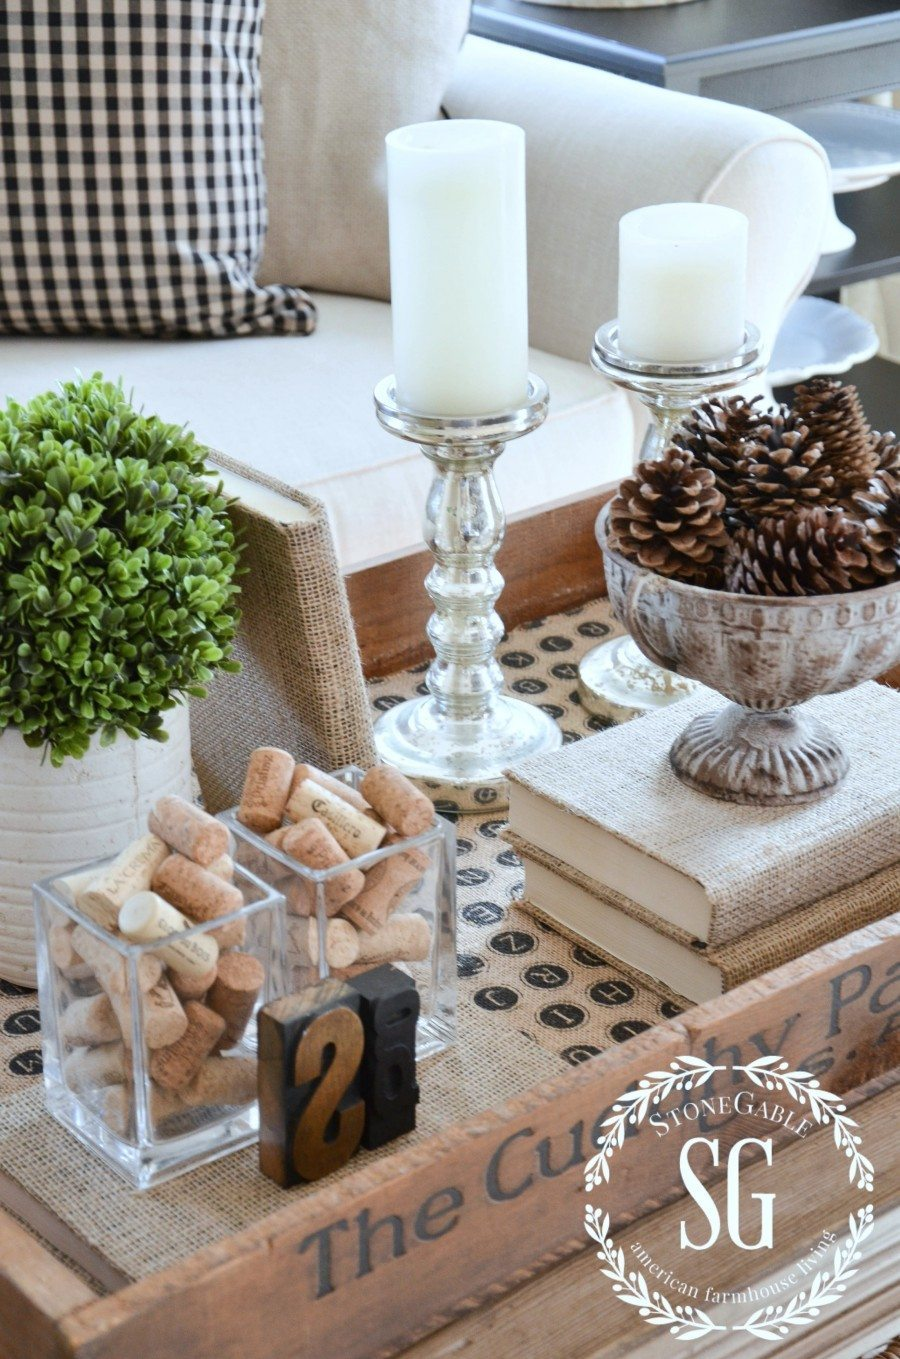 TRANSITIONAL-FALL-VIGNETTE-natural-colors-warm-hues-stonegableblog